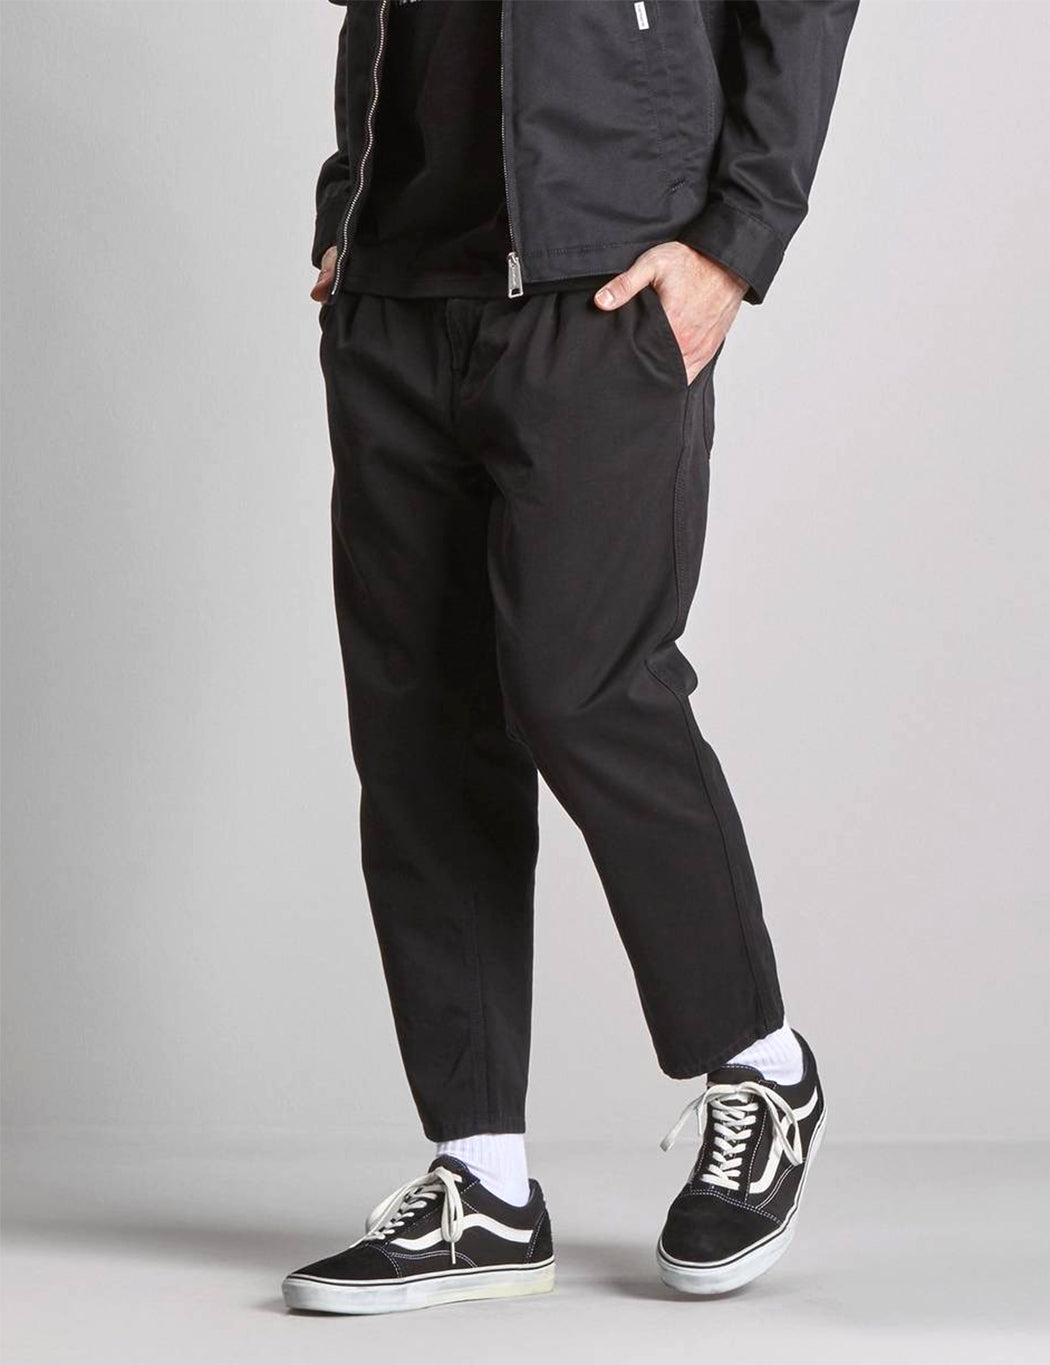 Carhartt Abbott Pant (Tapered Fit) - Black Stone Washed | URBAN EXCESS